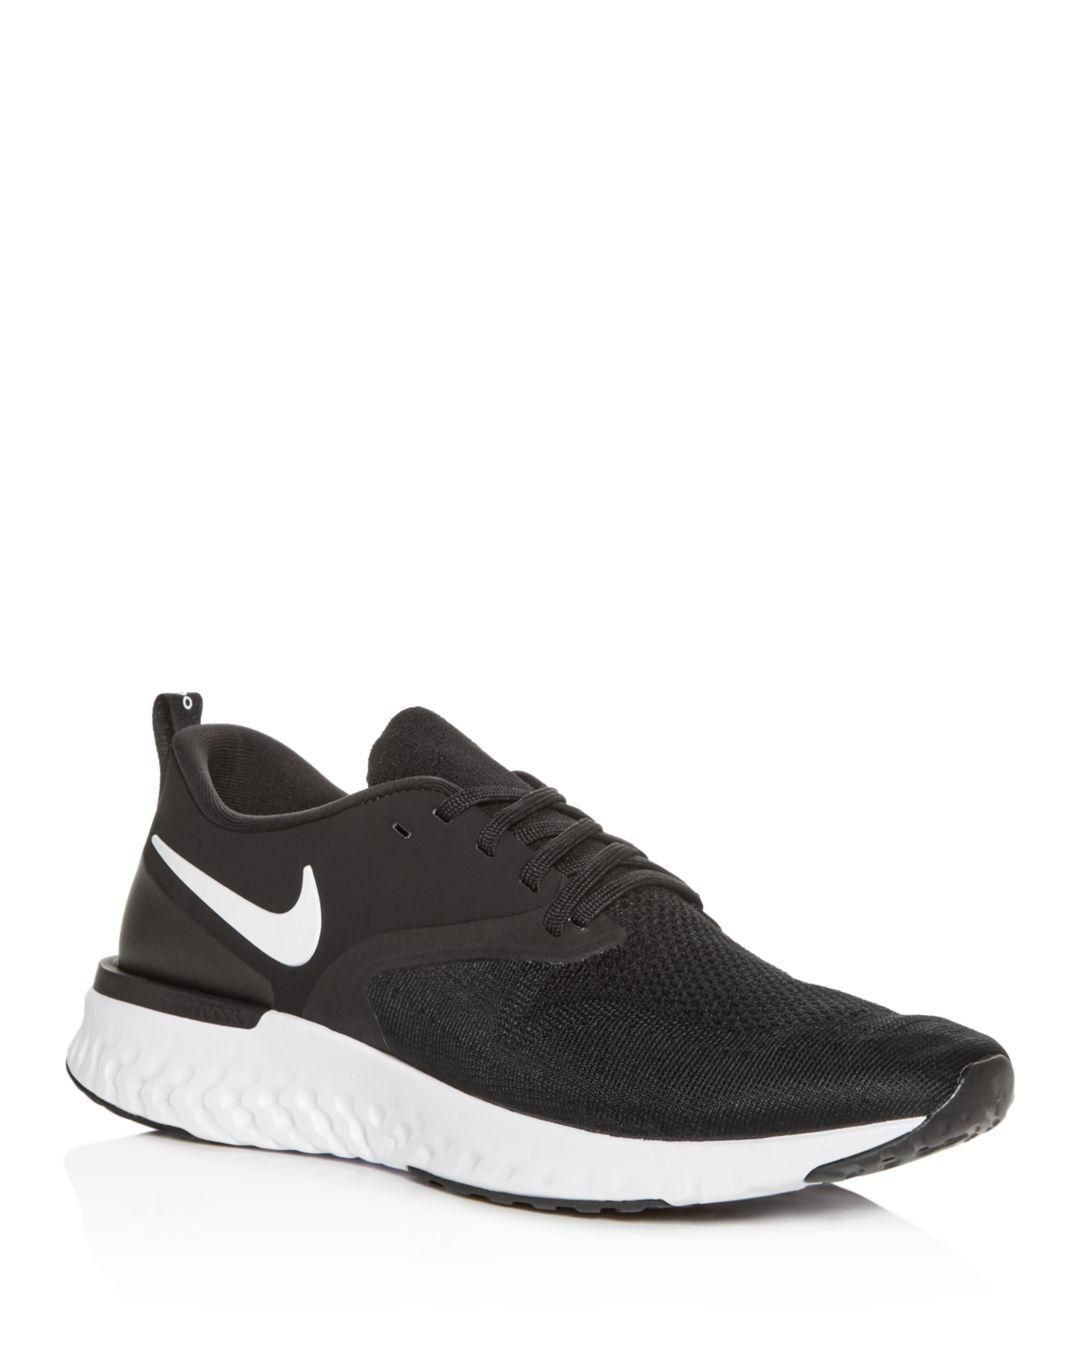 e2dc494f882dd Lyst - Nike Men s Odyssey React Low-top Sneakers in Black for Men ...